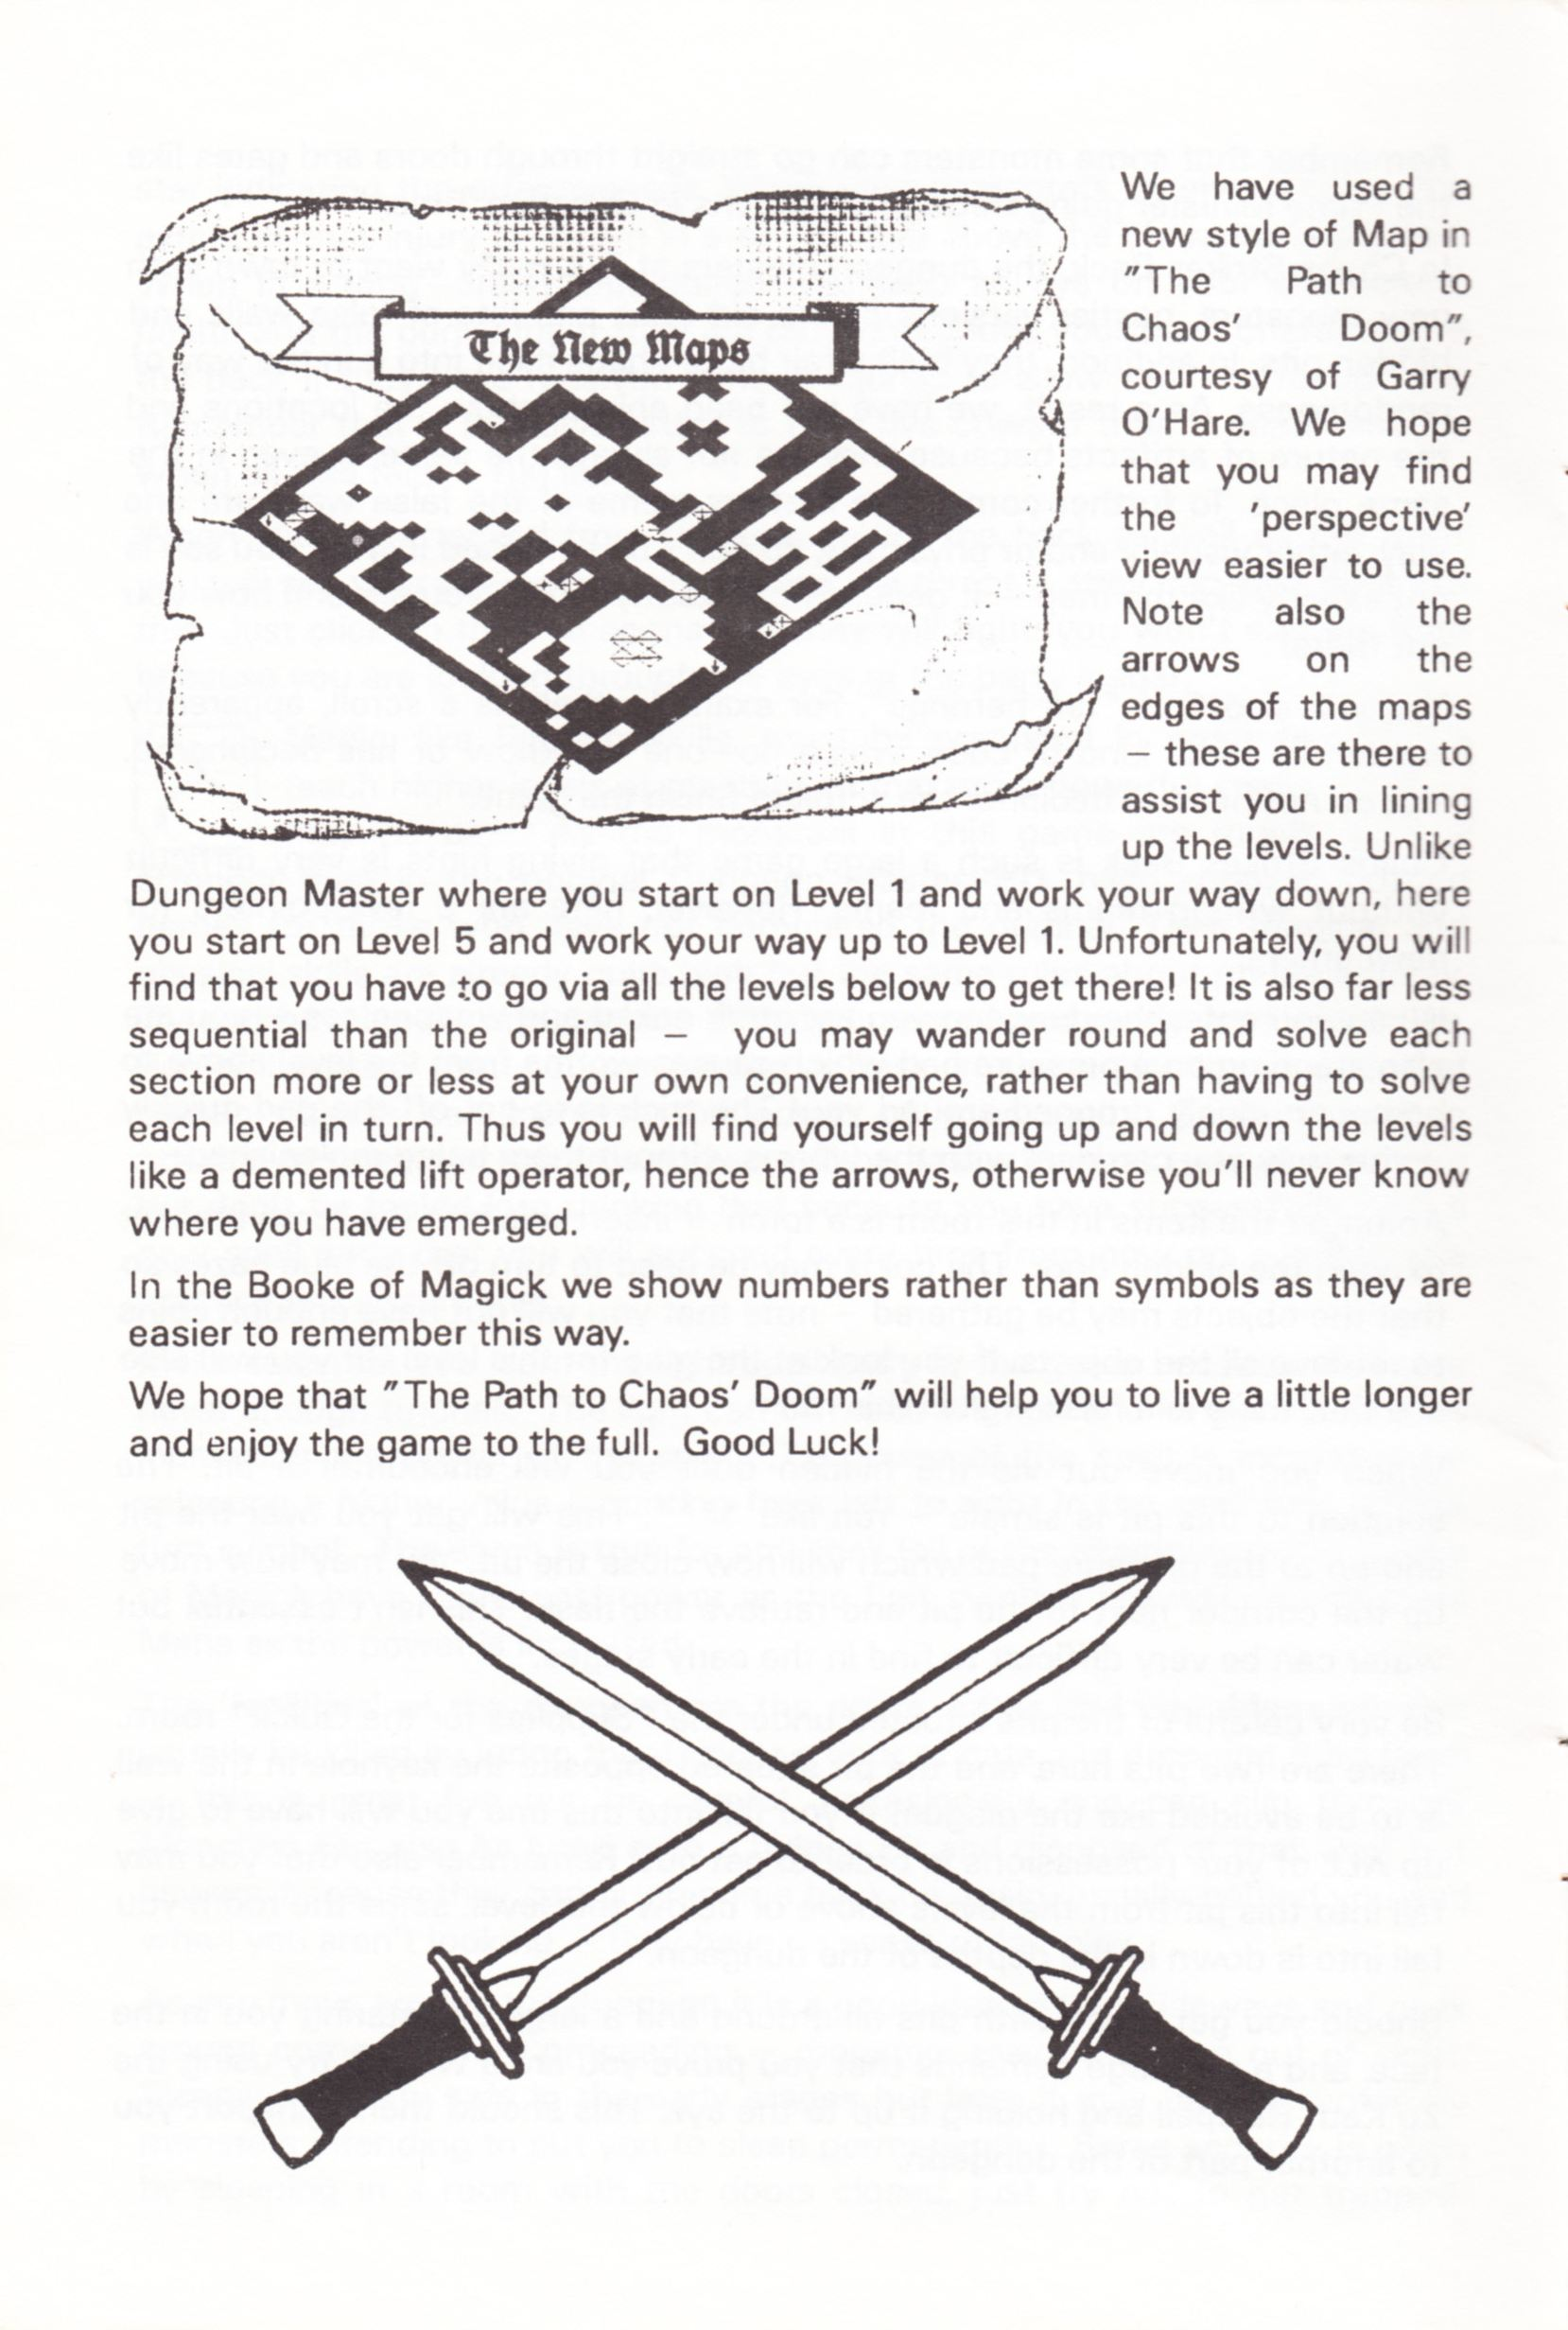 Tool - The Chaos Editor - UK - Atari ST - Manual - Page 006 - Scan